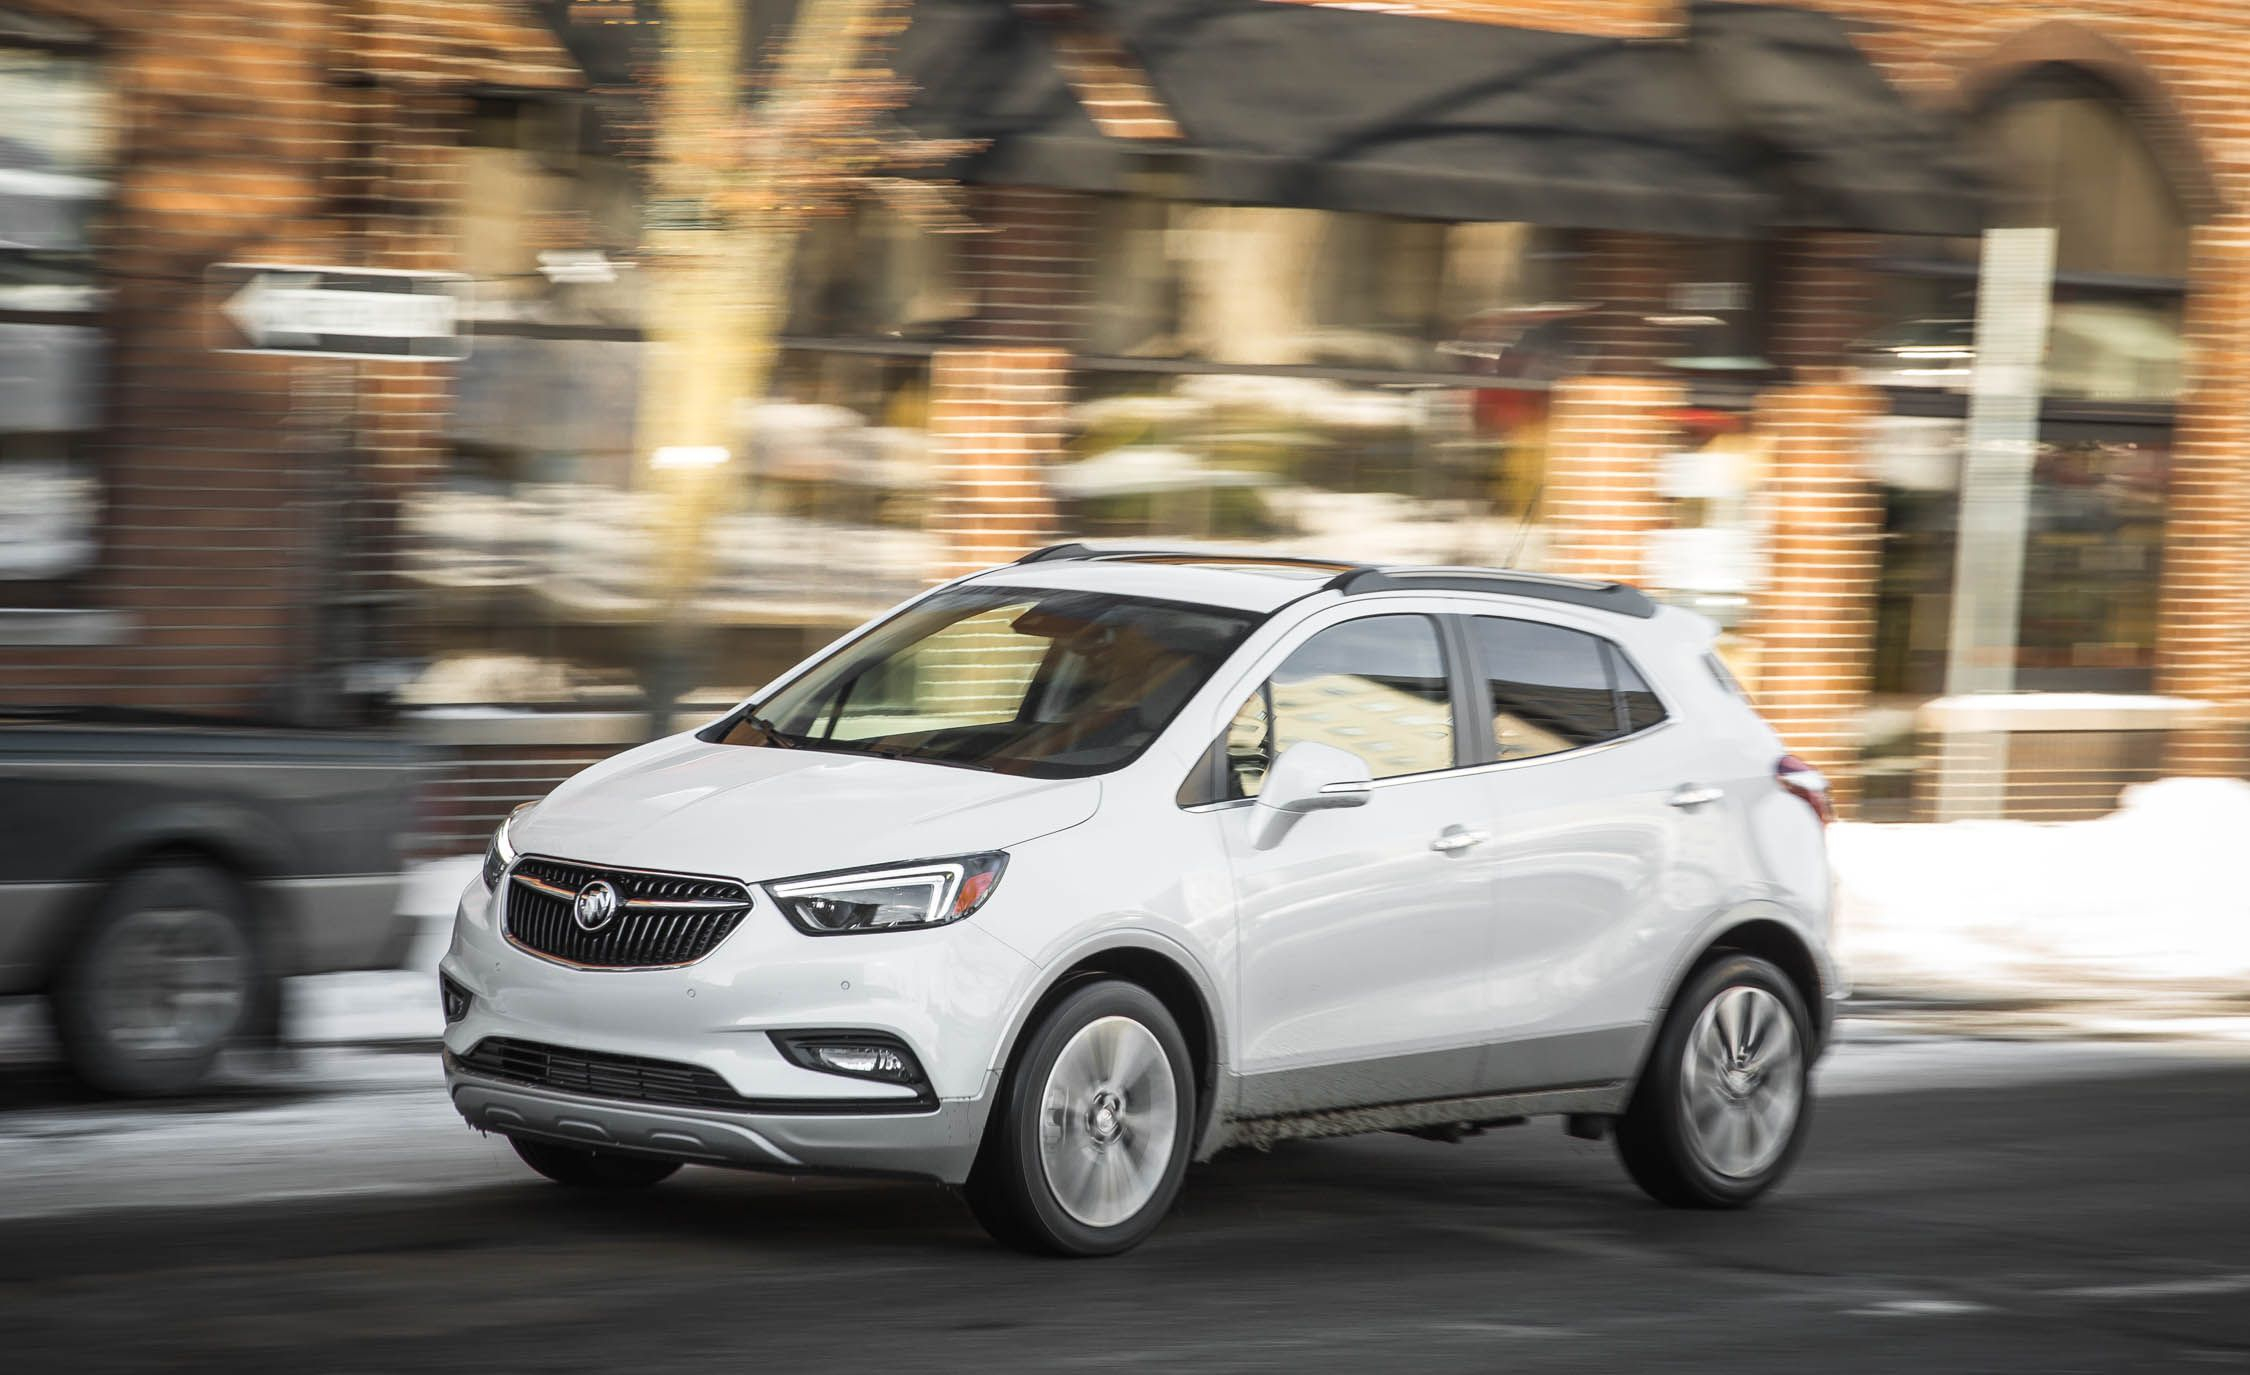 2019 Buick Encore Review, Pricing, And Specs 2021 Buick Encore Problems, Specs, Safety Rating